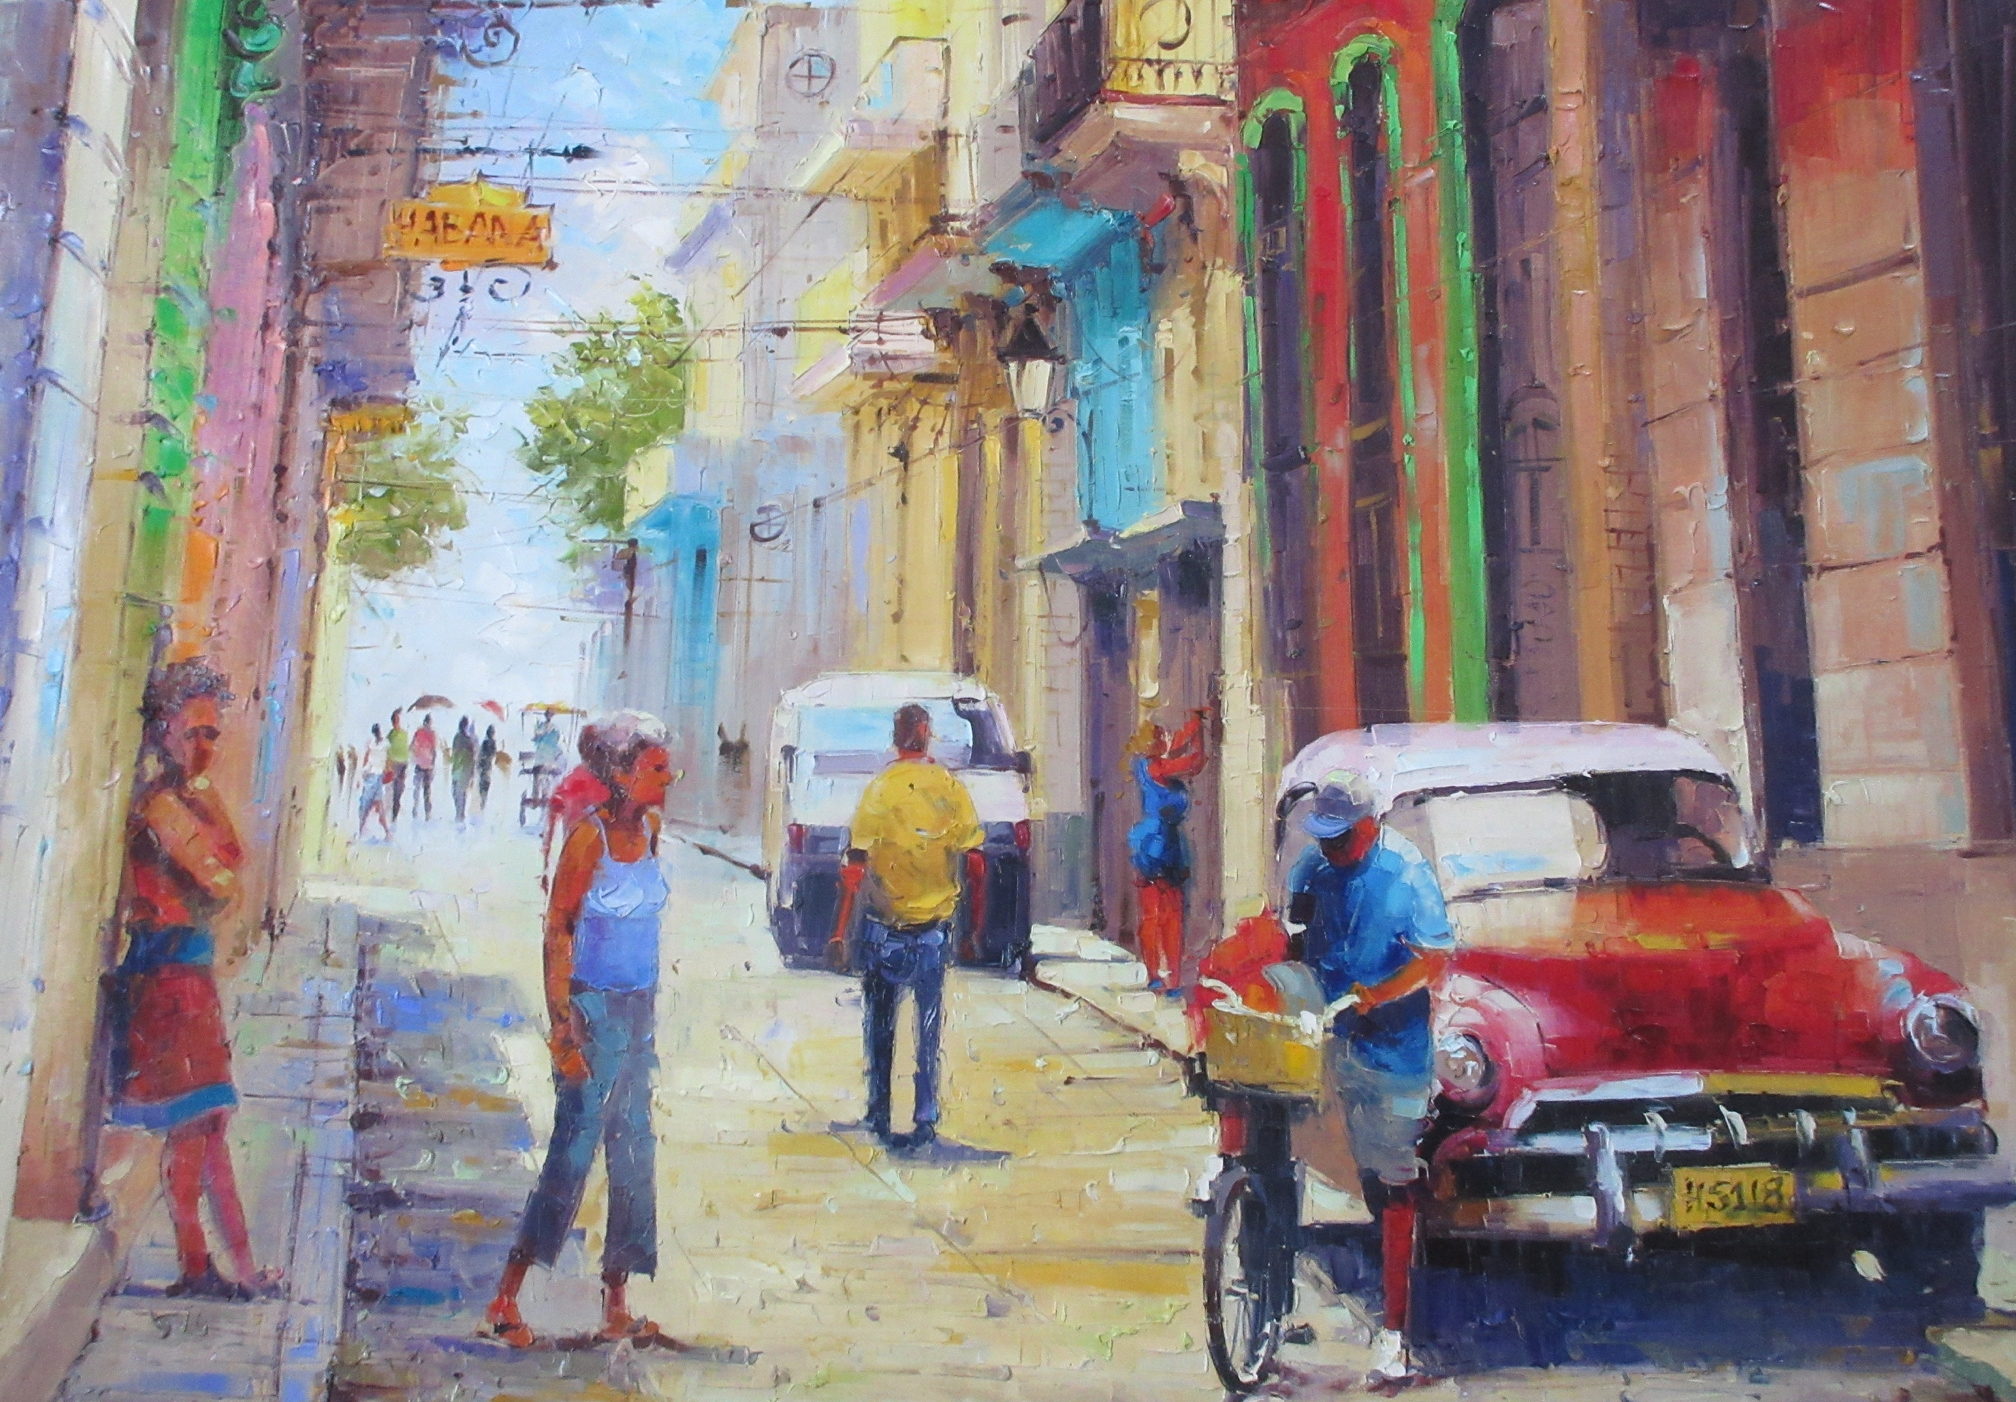 A painting from the handicraft market in Havana